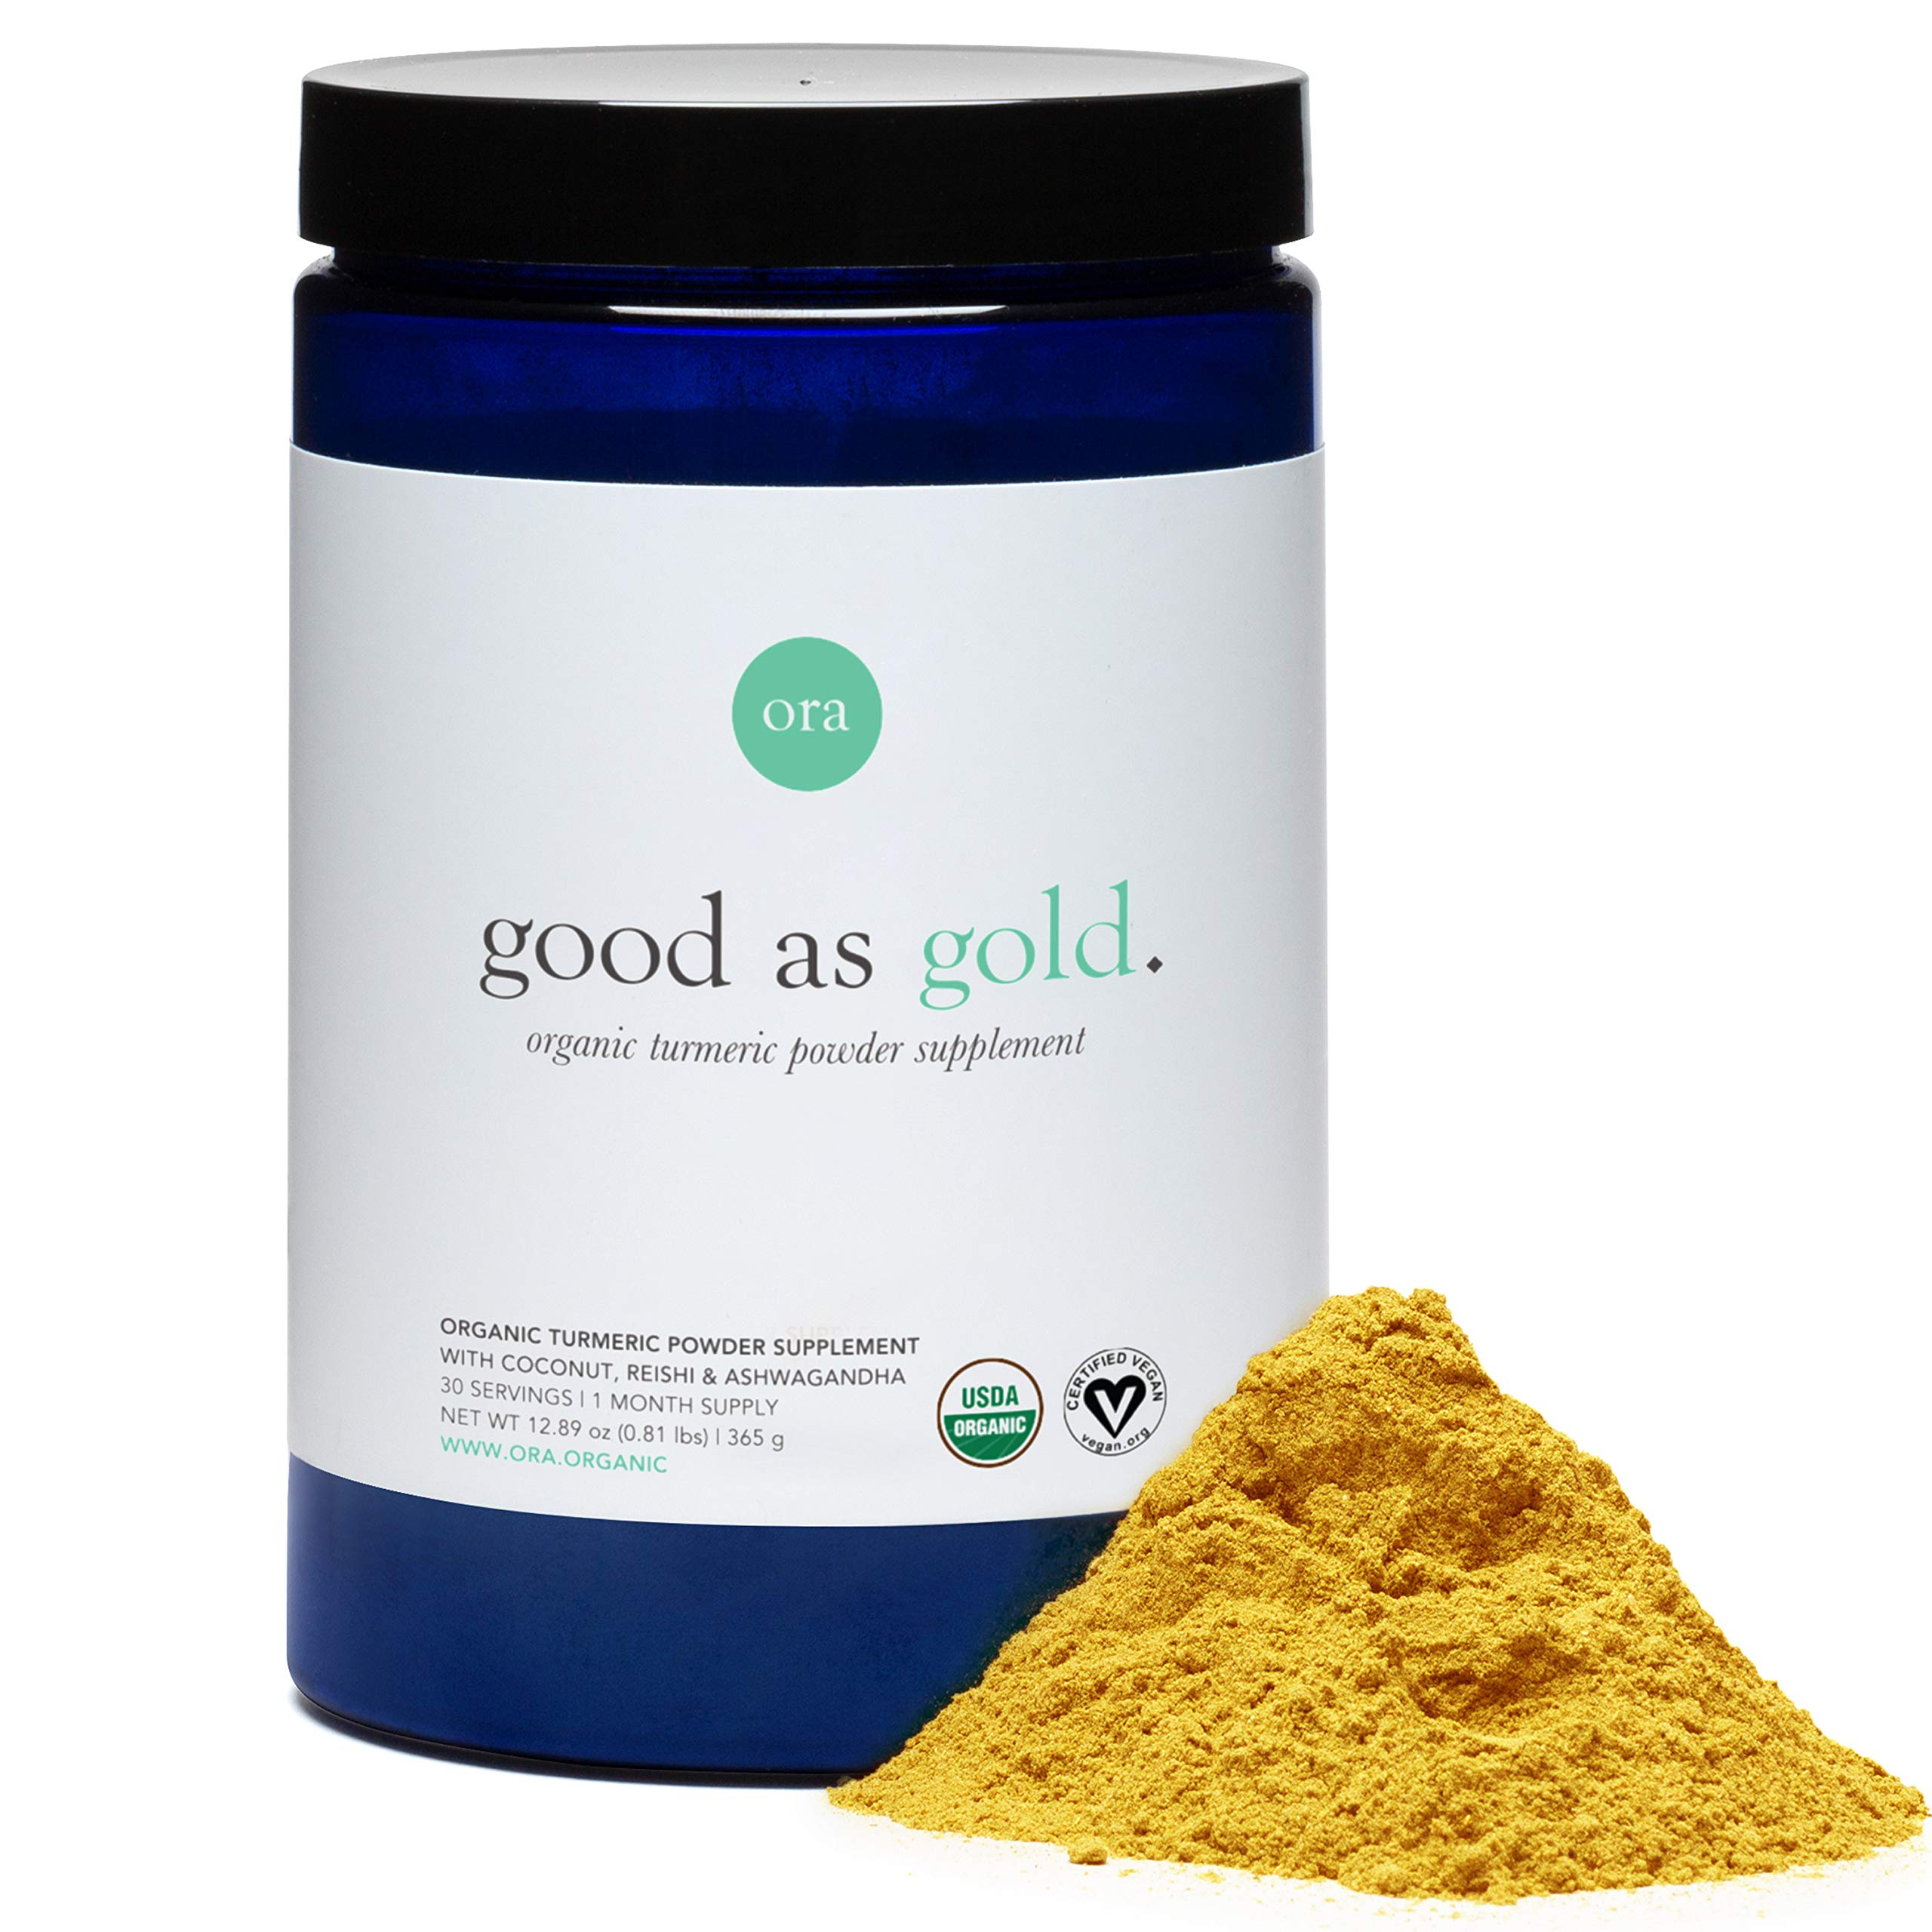 Ora Organic Golden Milk Turmeric Powder Supplement with Ashwagandha, Reishi and Ginger, Vegan, Non-GMO - Full Size